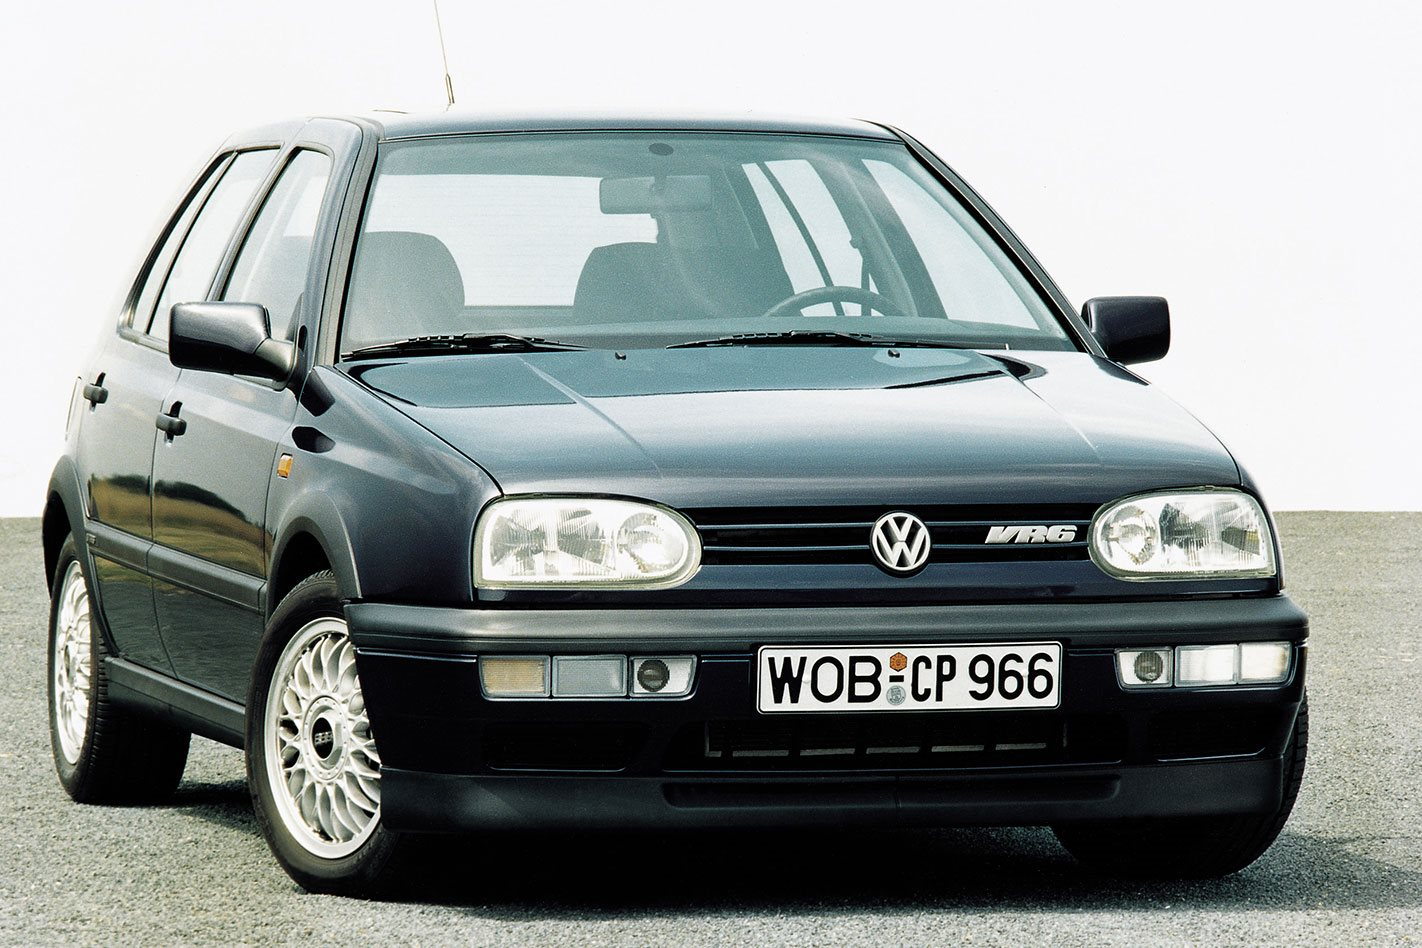 hight resolution of the car in question is called the golf vr6 and the main mechanical difference between it and the r32 is the vr6 s lack of all wheel drive